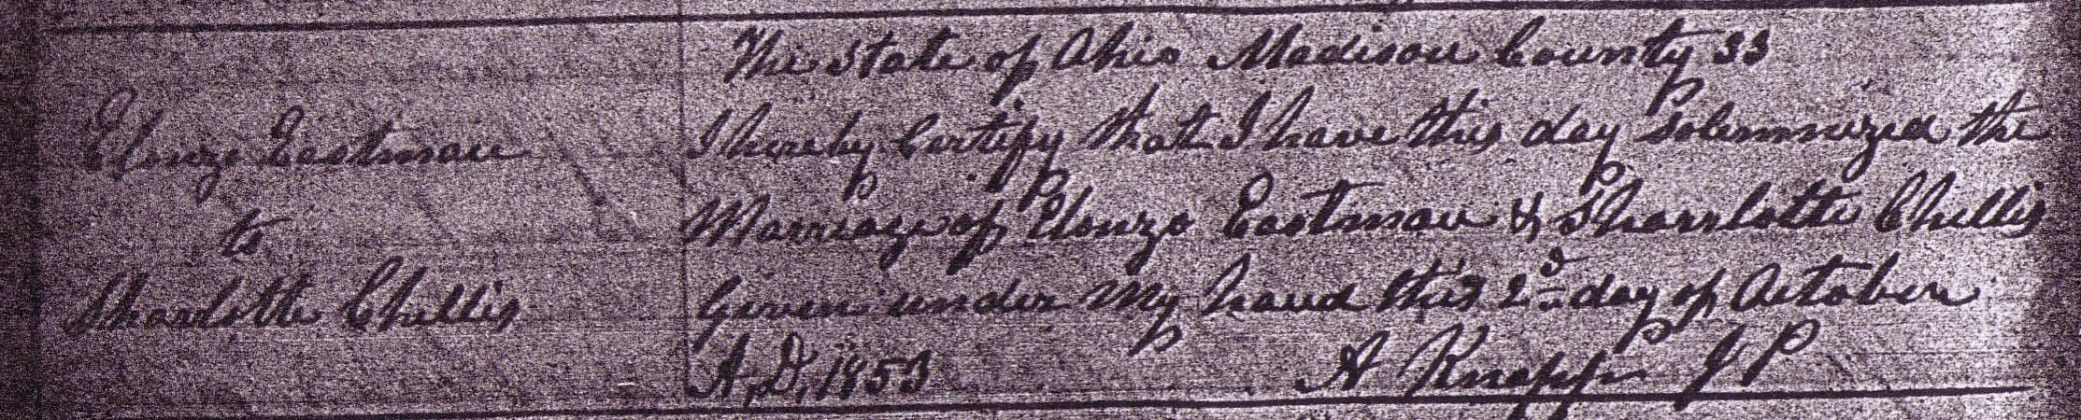 Alonzo Eastman and Charlotte Chellis marriage record,1853